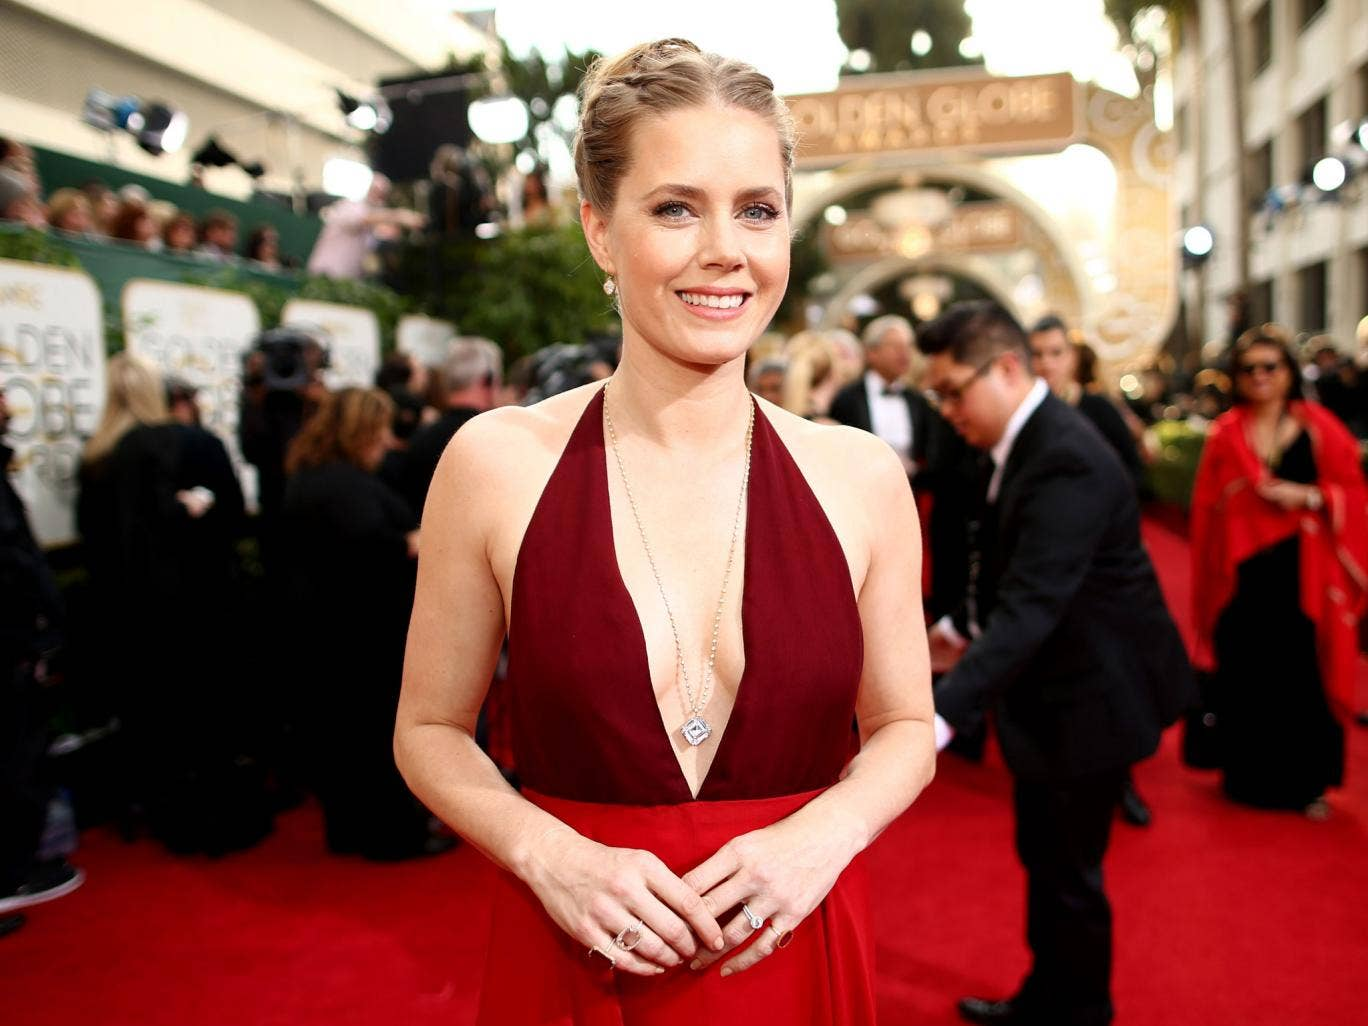 Actress Amy Adams arrives at the 71st Annual Golden Globe Awards